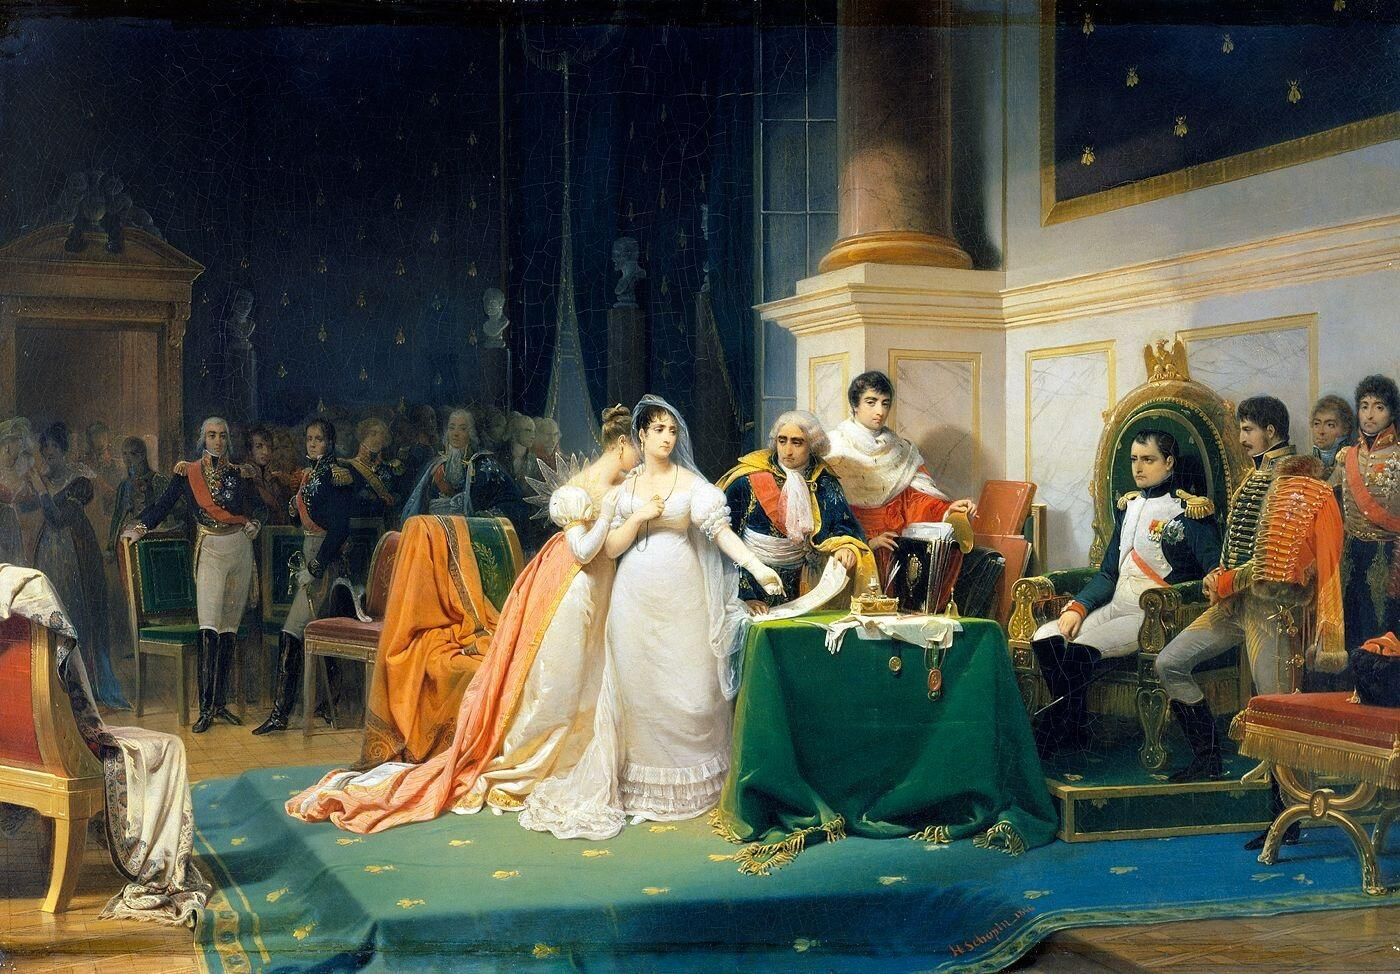 Napoleon, tyrant or genius?  The controversies surrounding the emperor